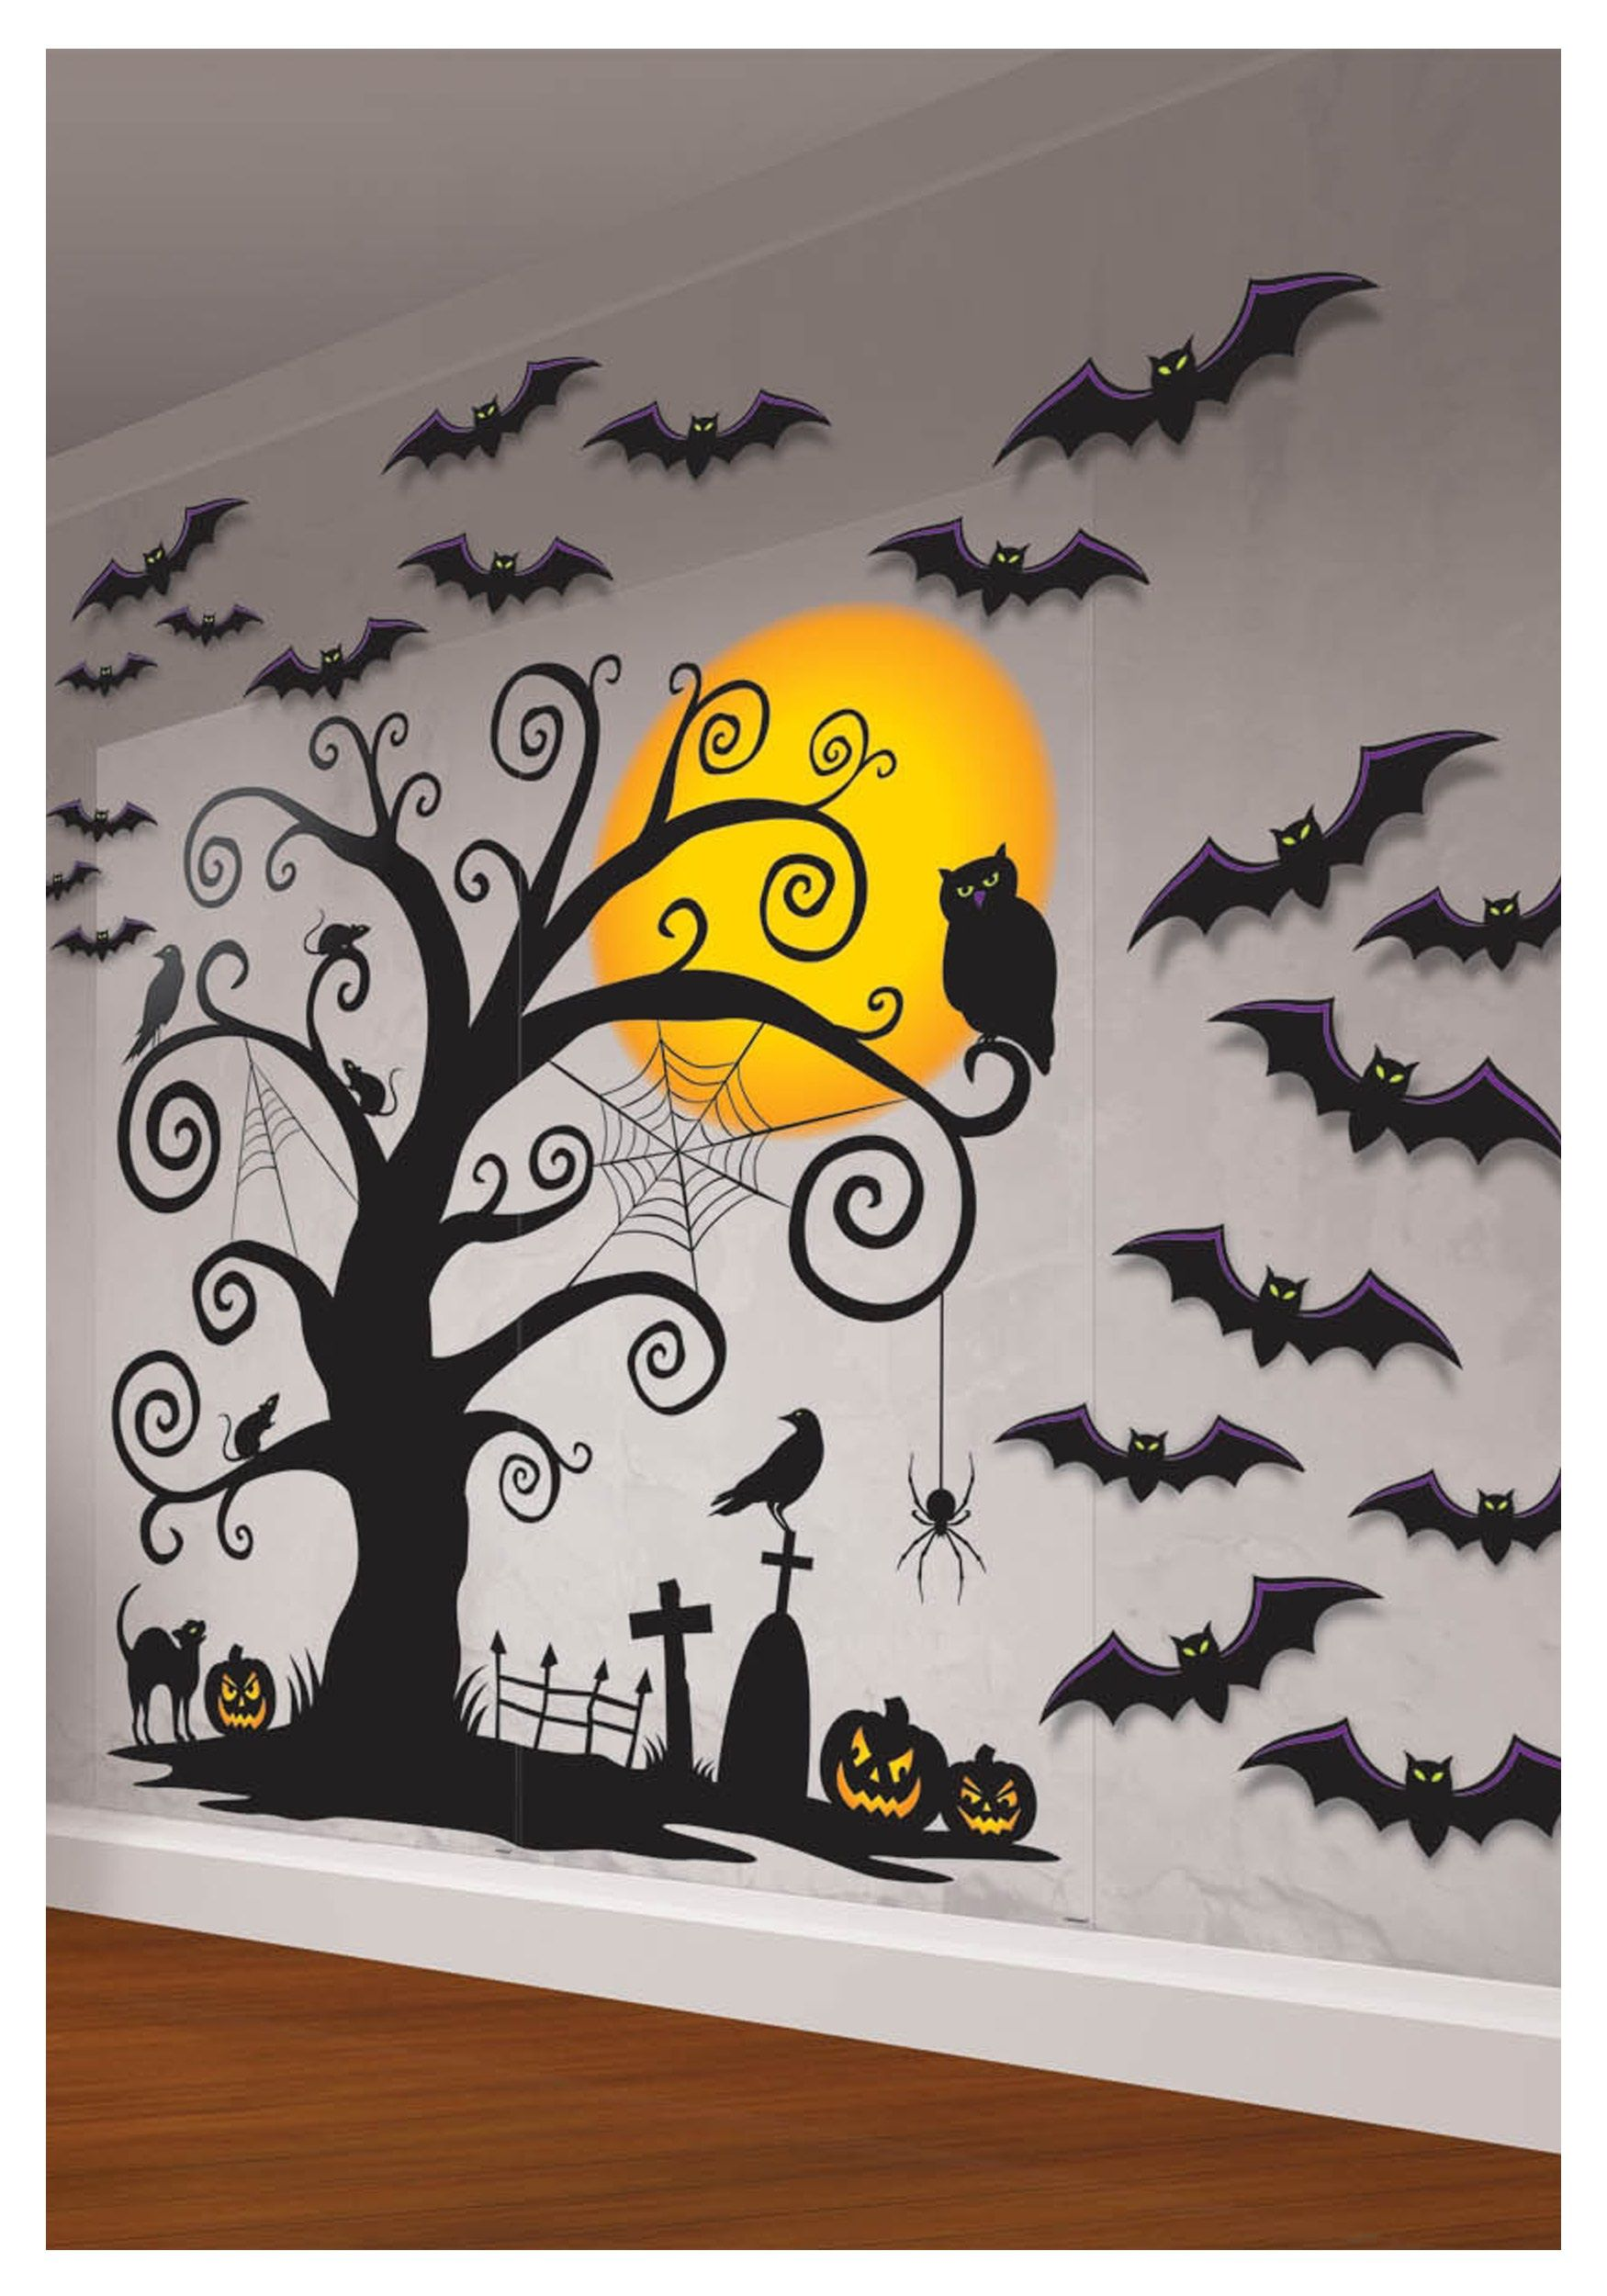 Office halloween decorations ideas - Indoor Wall Decorating Kit Halloween Office Decorationsdance Decorationshalloween Decorating Ideashalloween